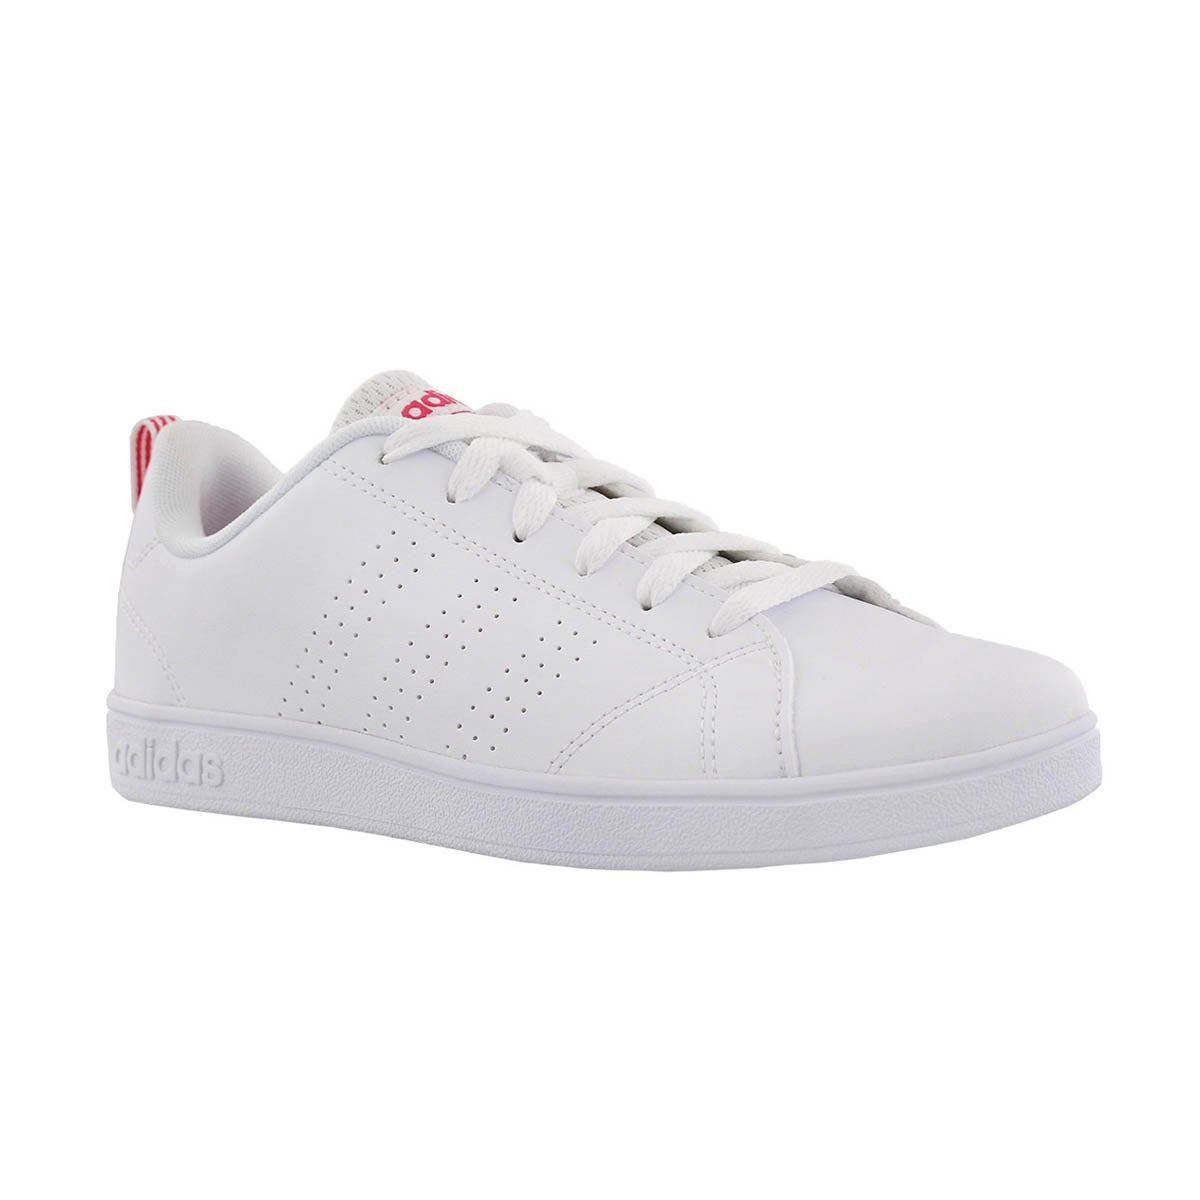 6ab77b878d4 adidas Kids  ADVANTAGE CLEAN white pink sneak